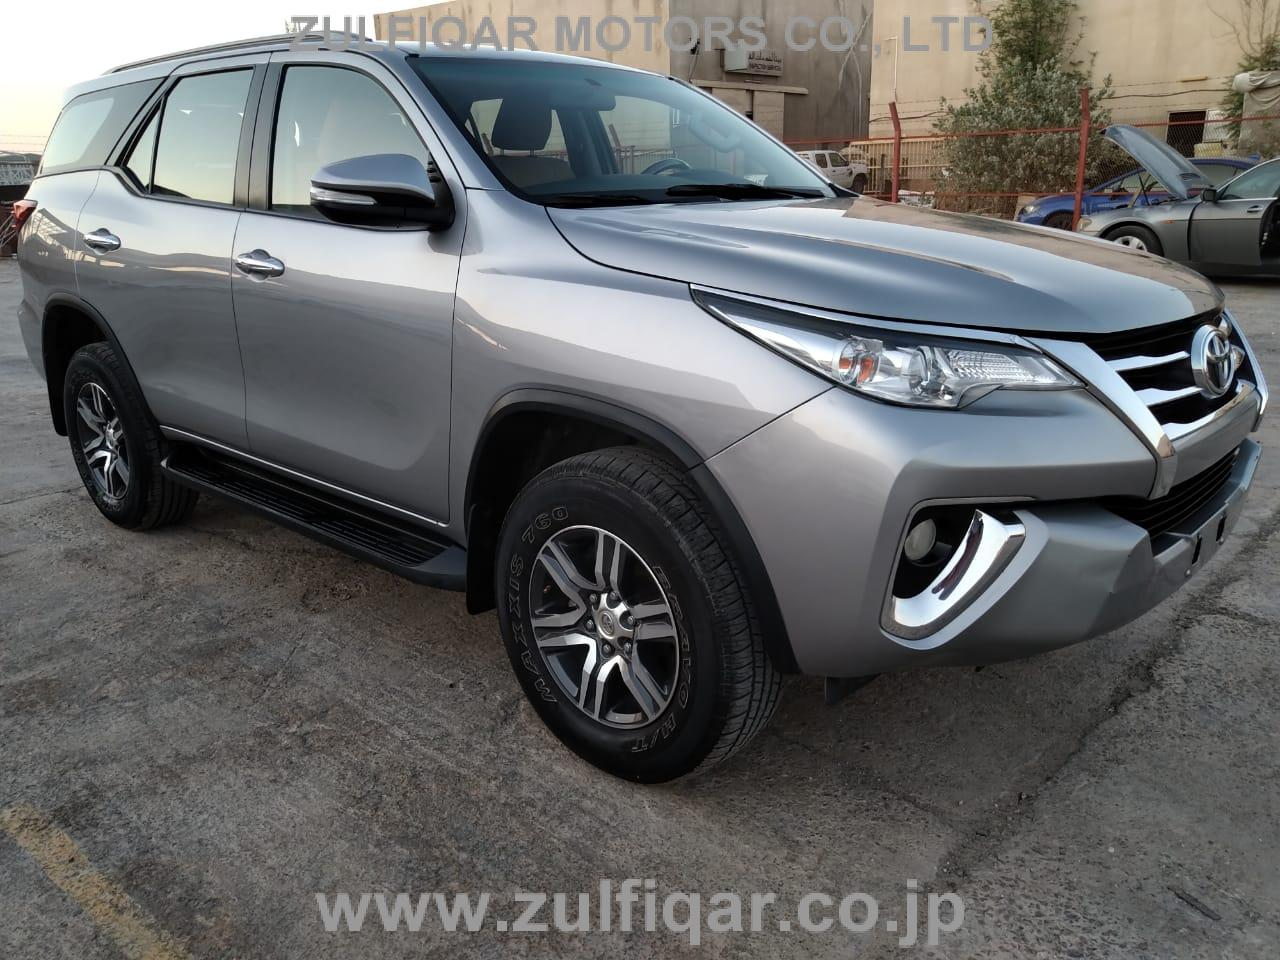 TOYOTA FORTUNER 2017 Image 4